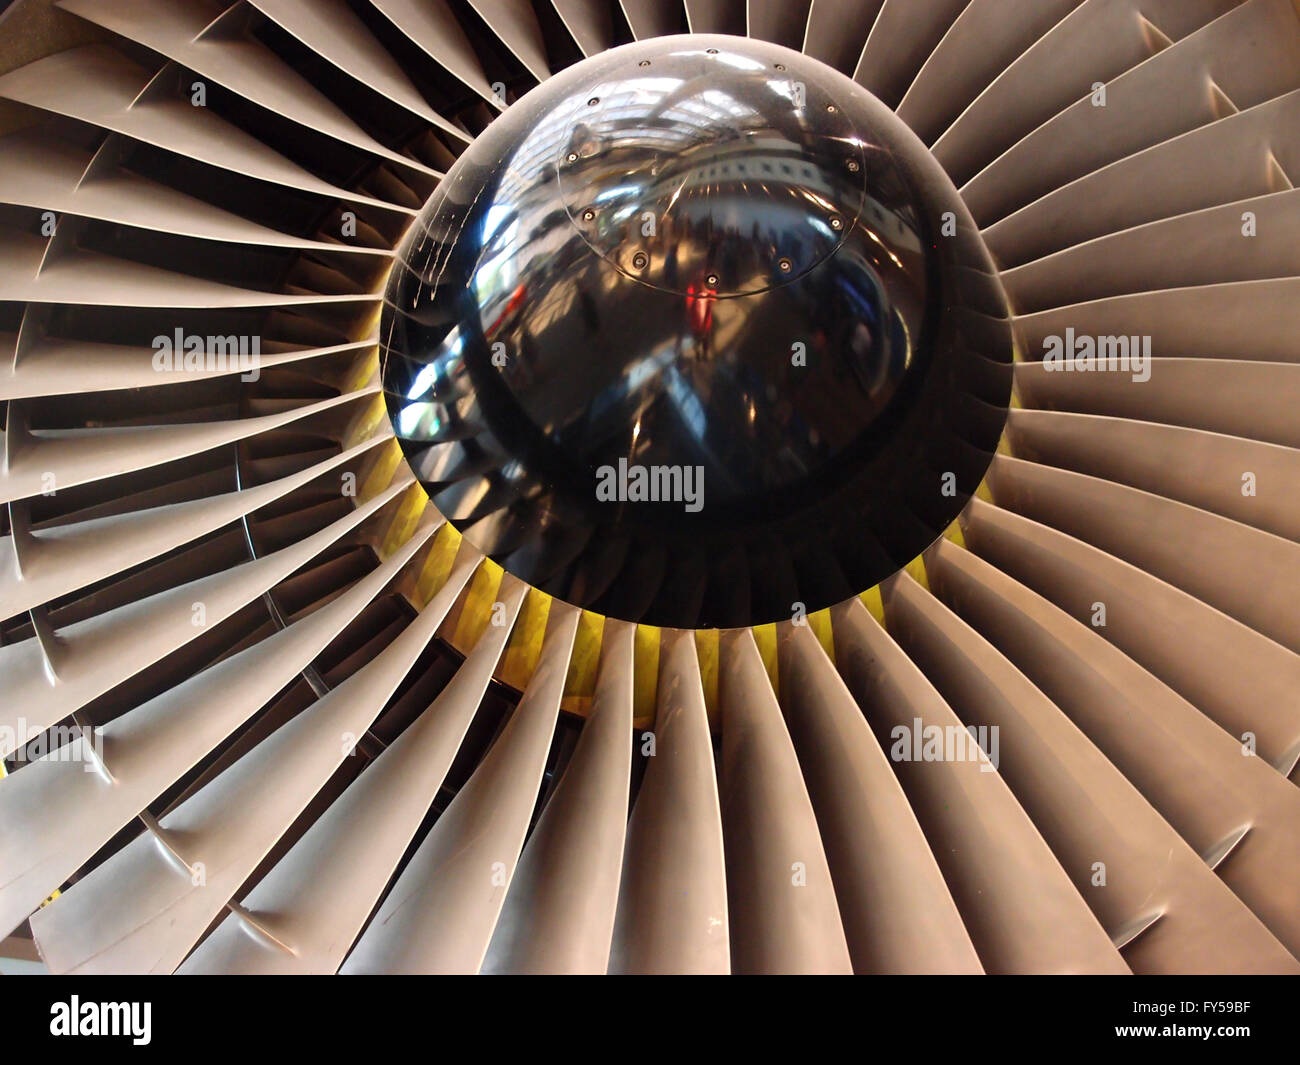 The turbine and blades of a jet engine. - Stock Image